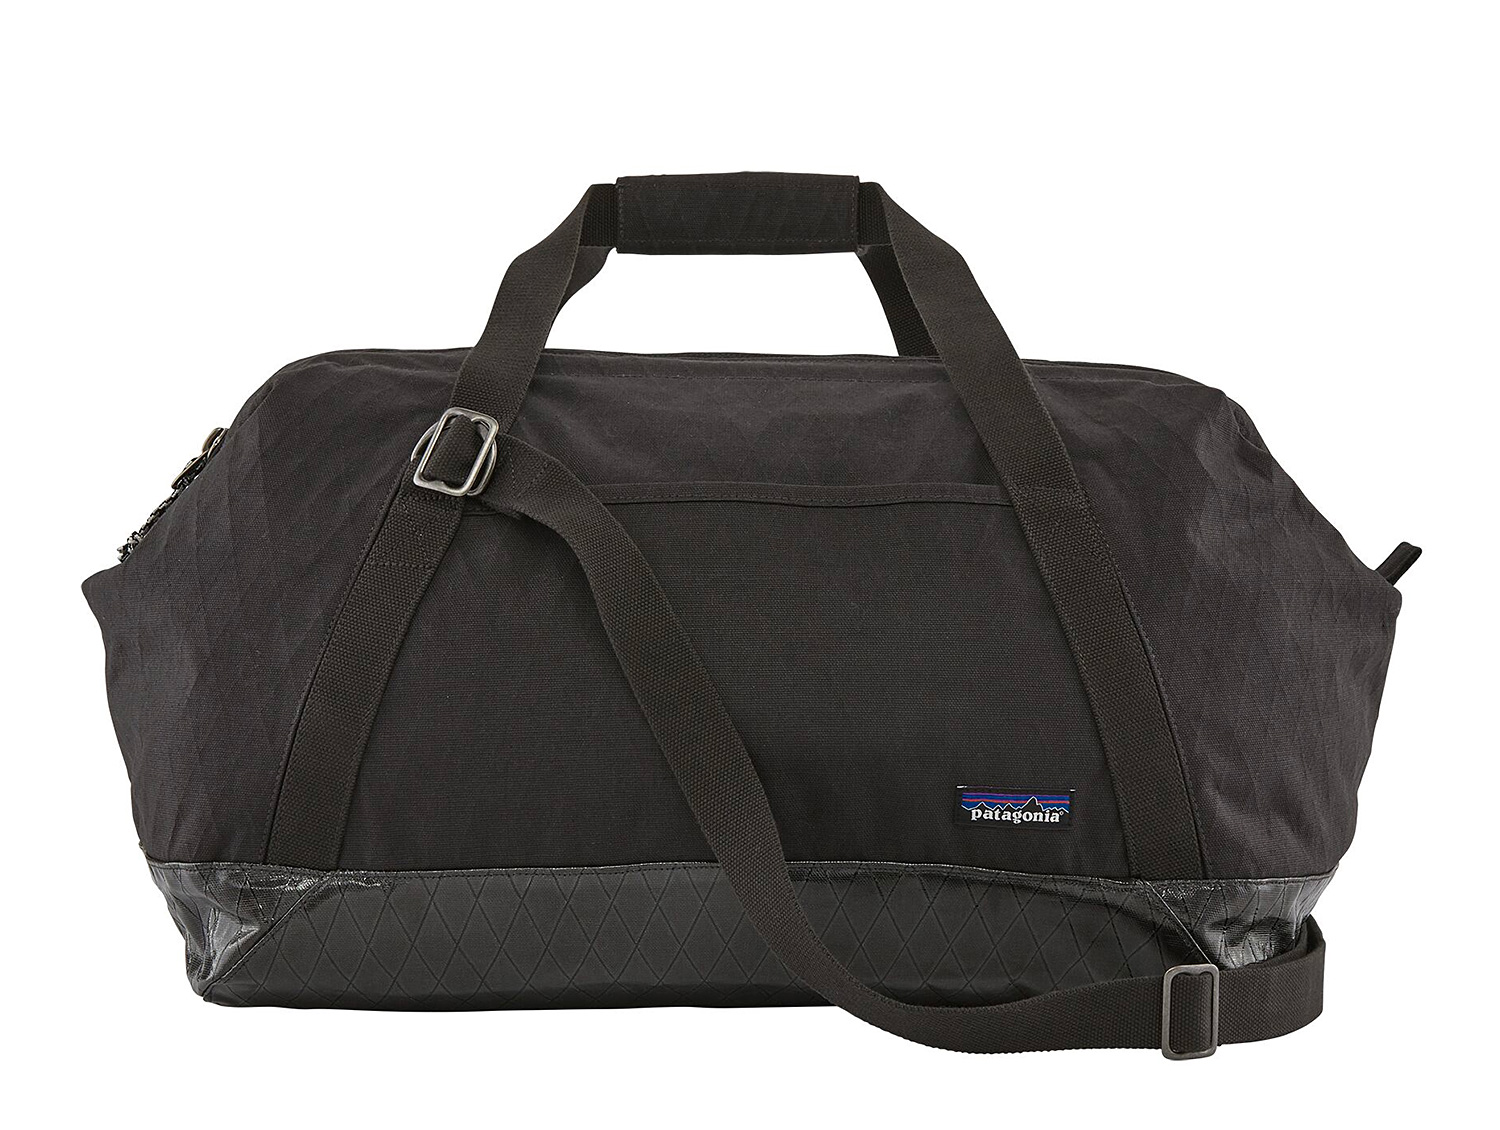 Patagonia's Stand Up Duffel Makes Gearing Up Easier at werd.com